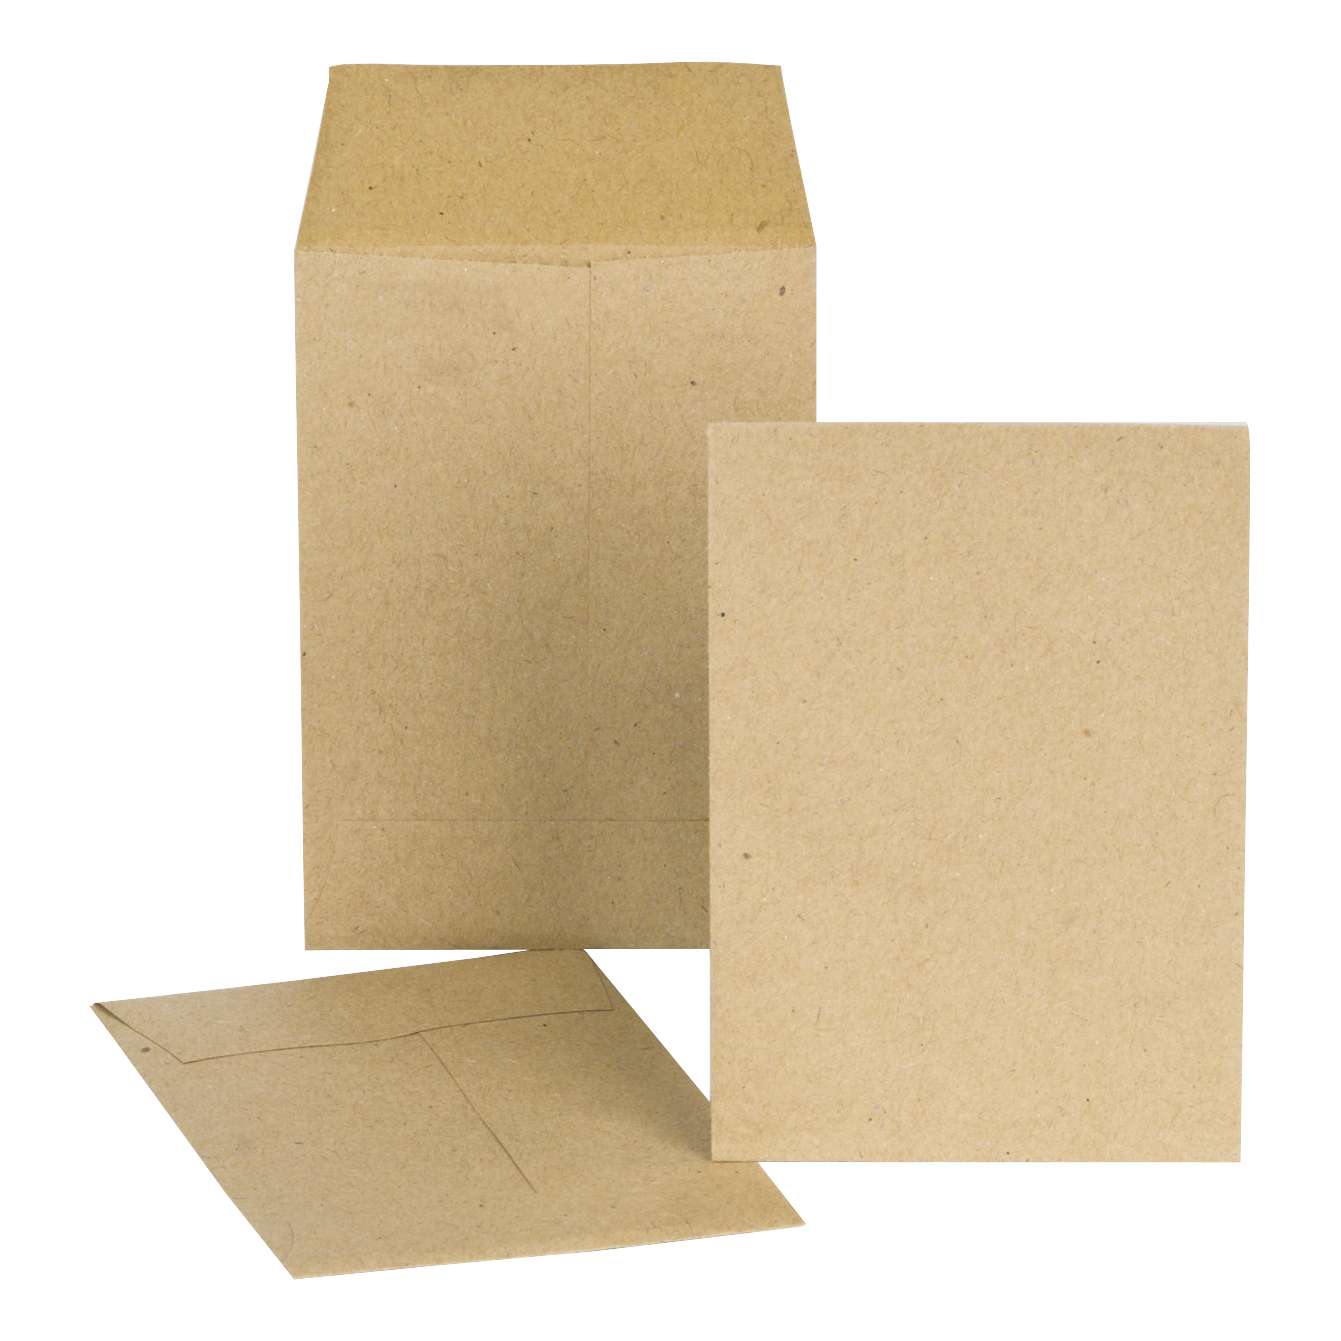 New Guardian Envelopes Lightweight 98x67mm Pocket Gummed 80gsm Manilla Ref M24011 Pack 2000